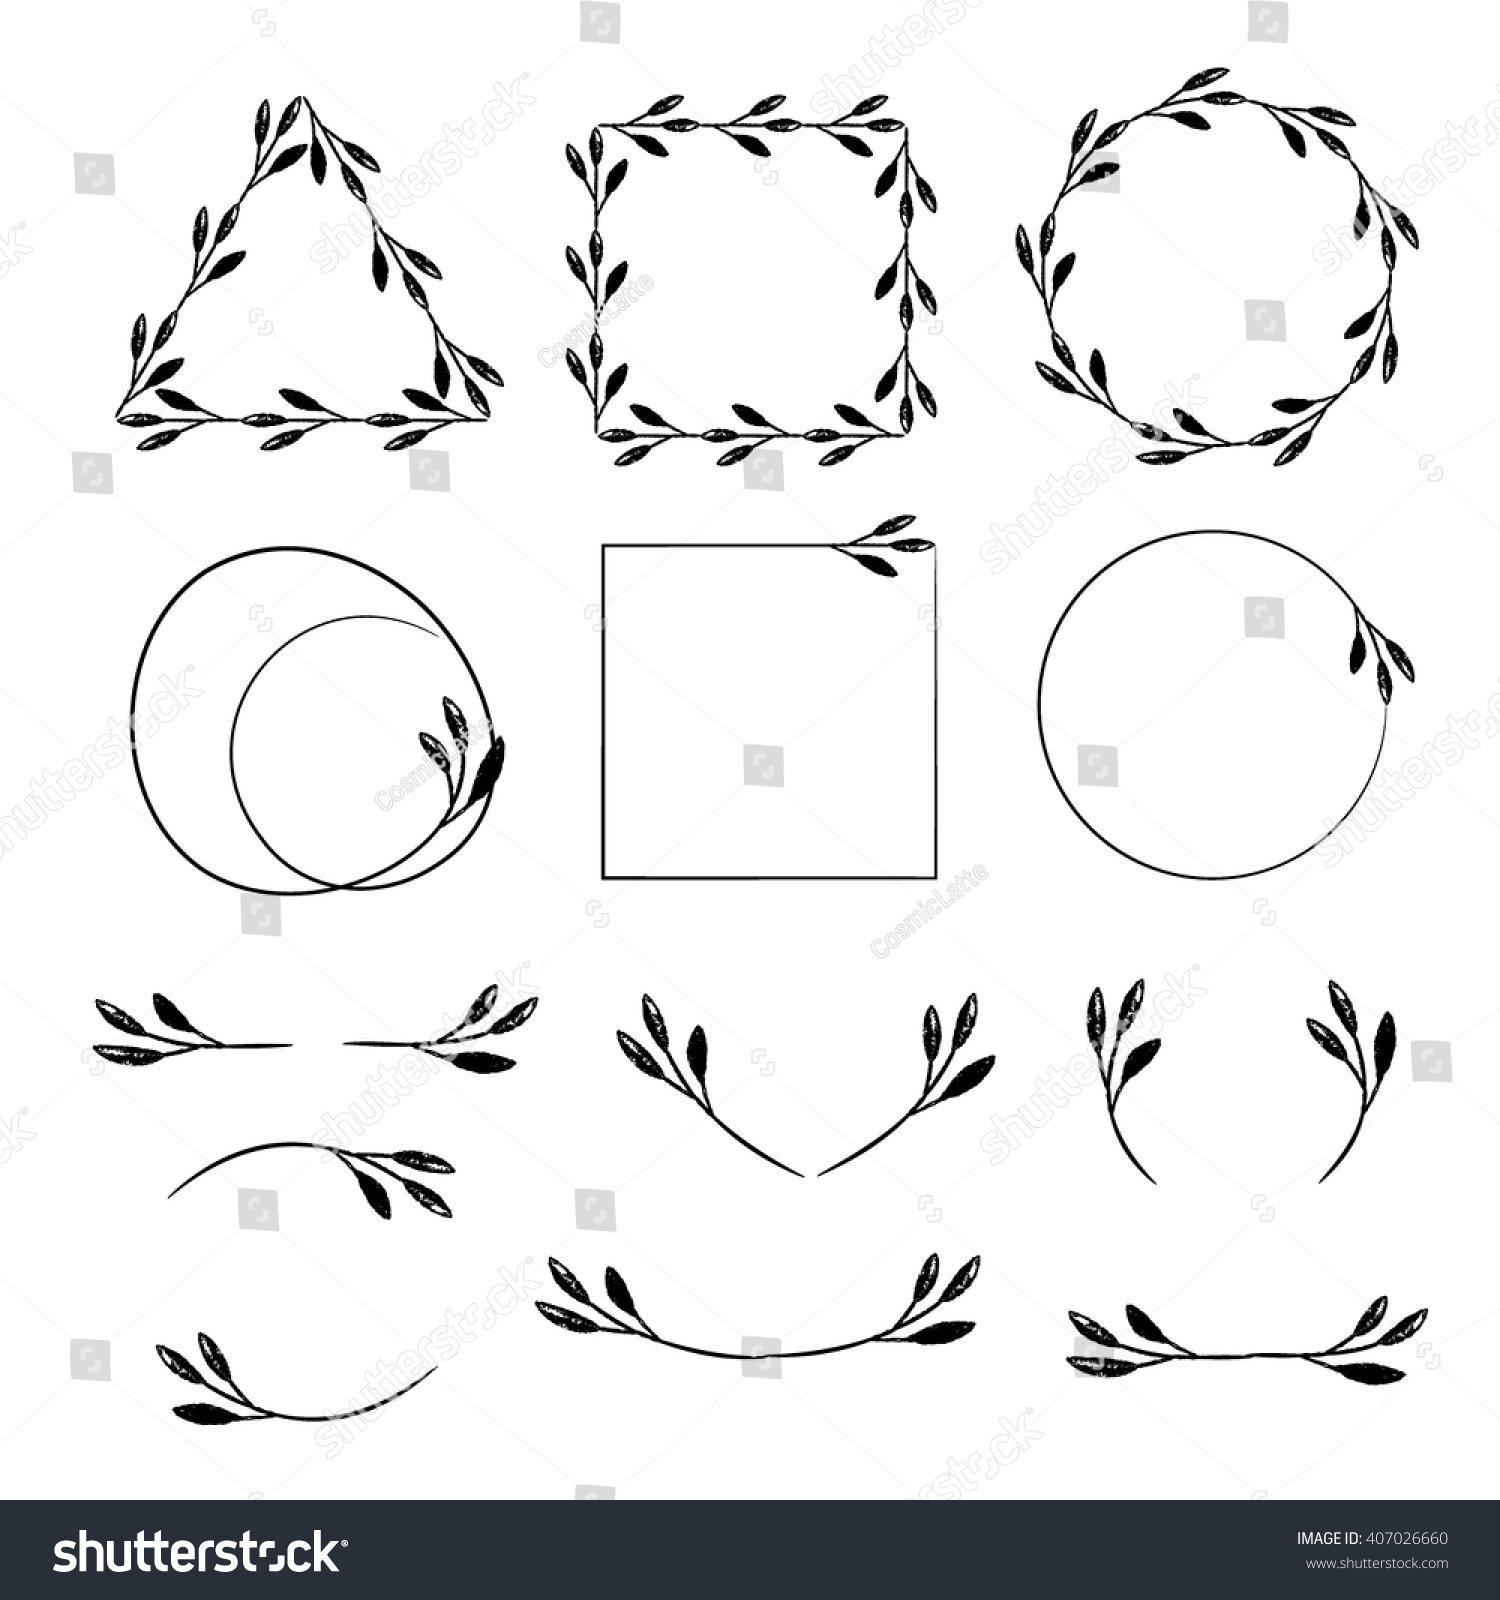 Botanical wreaths frames borders leaves clip stock vector botanical wreaths frames borders and leaves clip art vector design elements for greeting sciox Choice Image